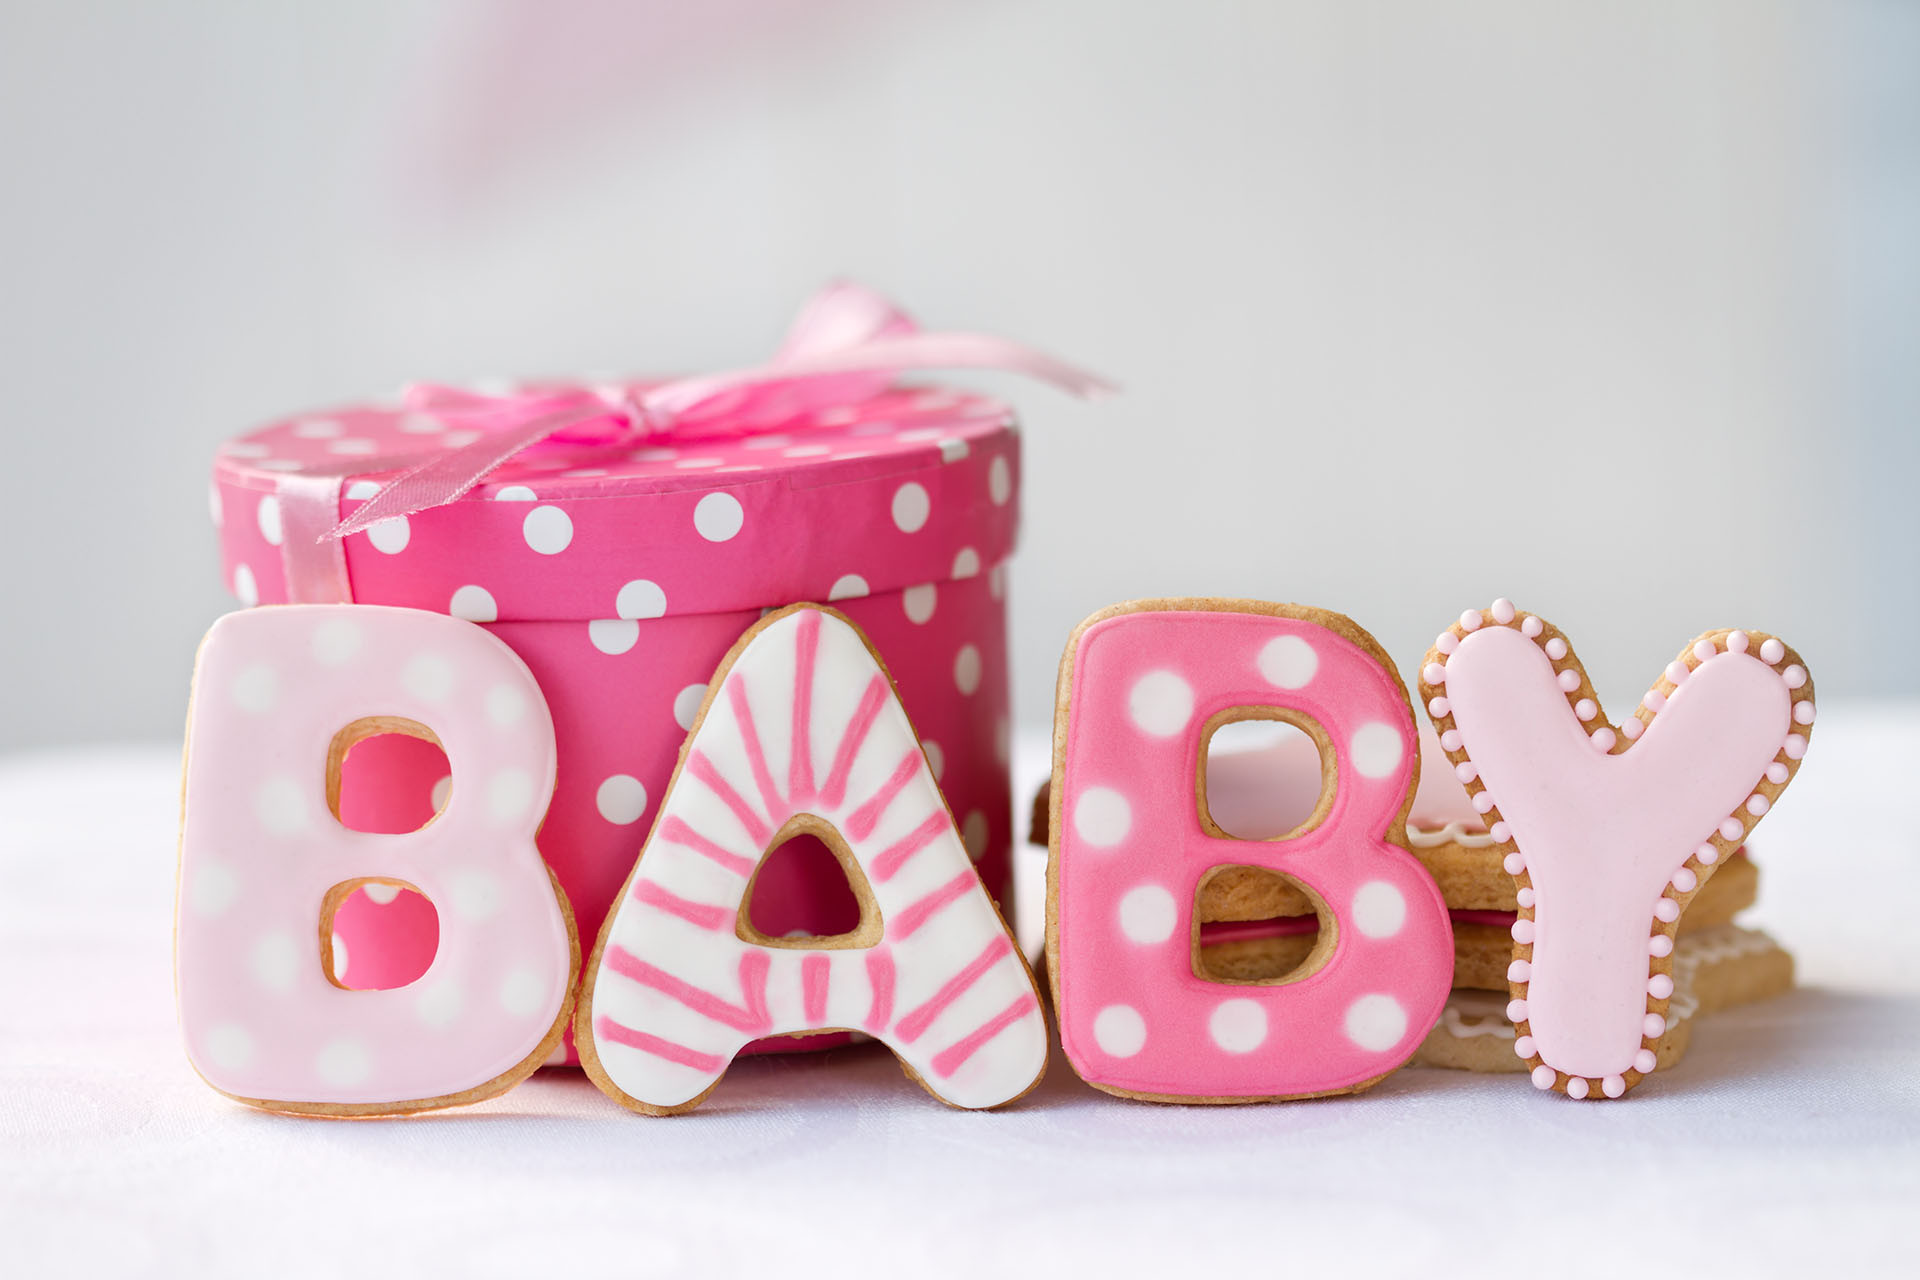 Best ideas about Baby Reveal Gift Ideas . Save or Pin Top 5 Gender Reveal Party Gift Ideas Now.